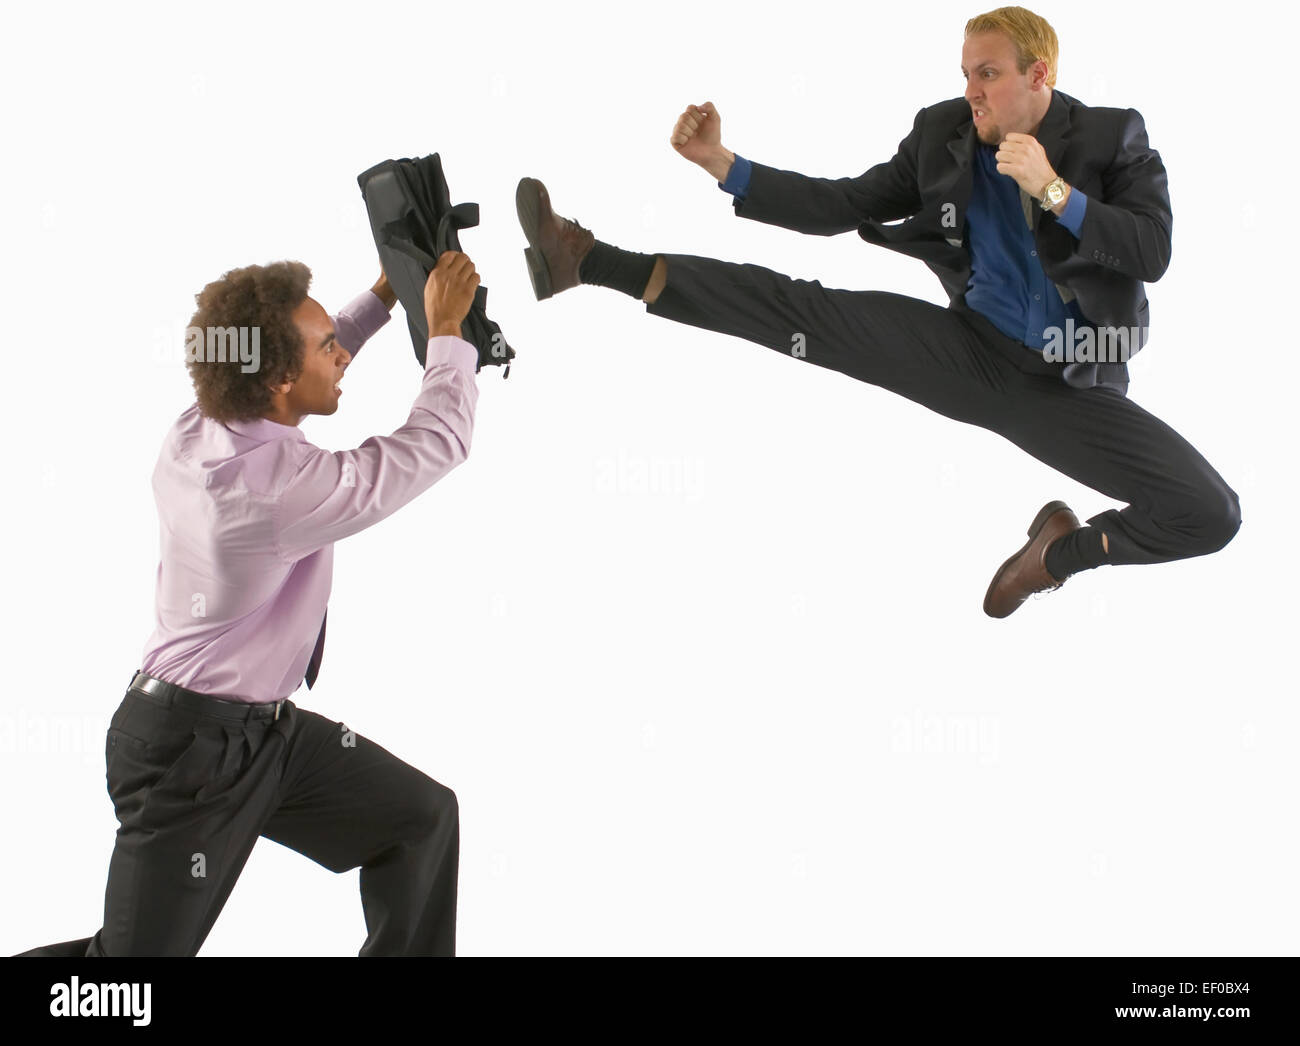 Two Business People Fighting Stock Photo Royalty Free